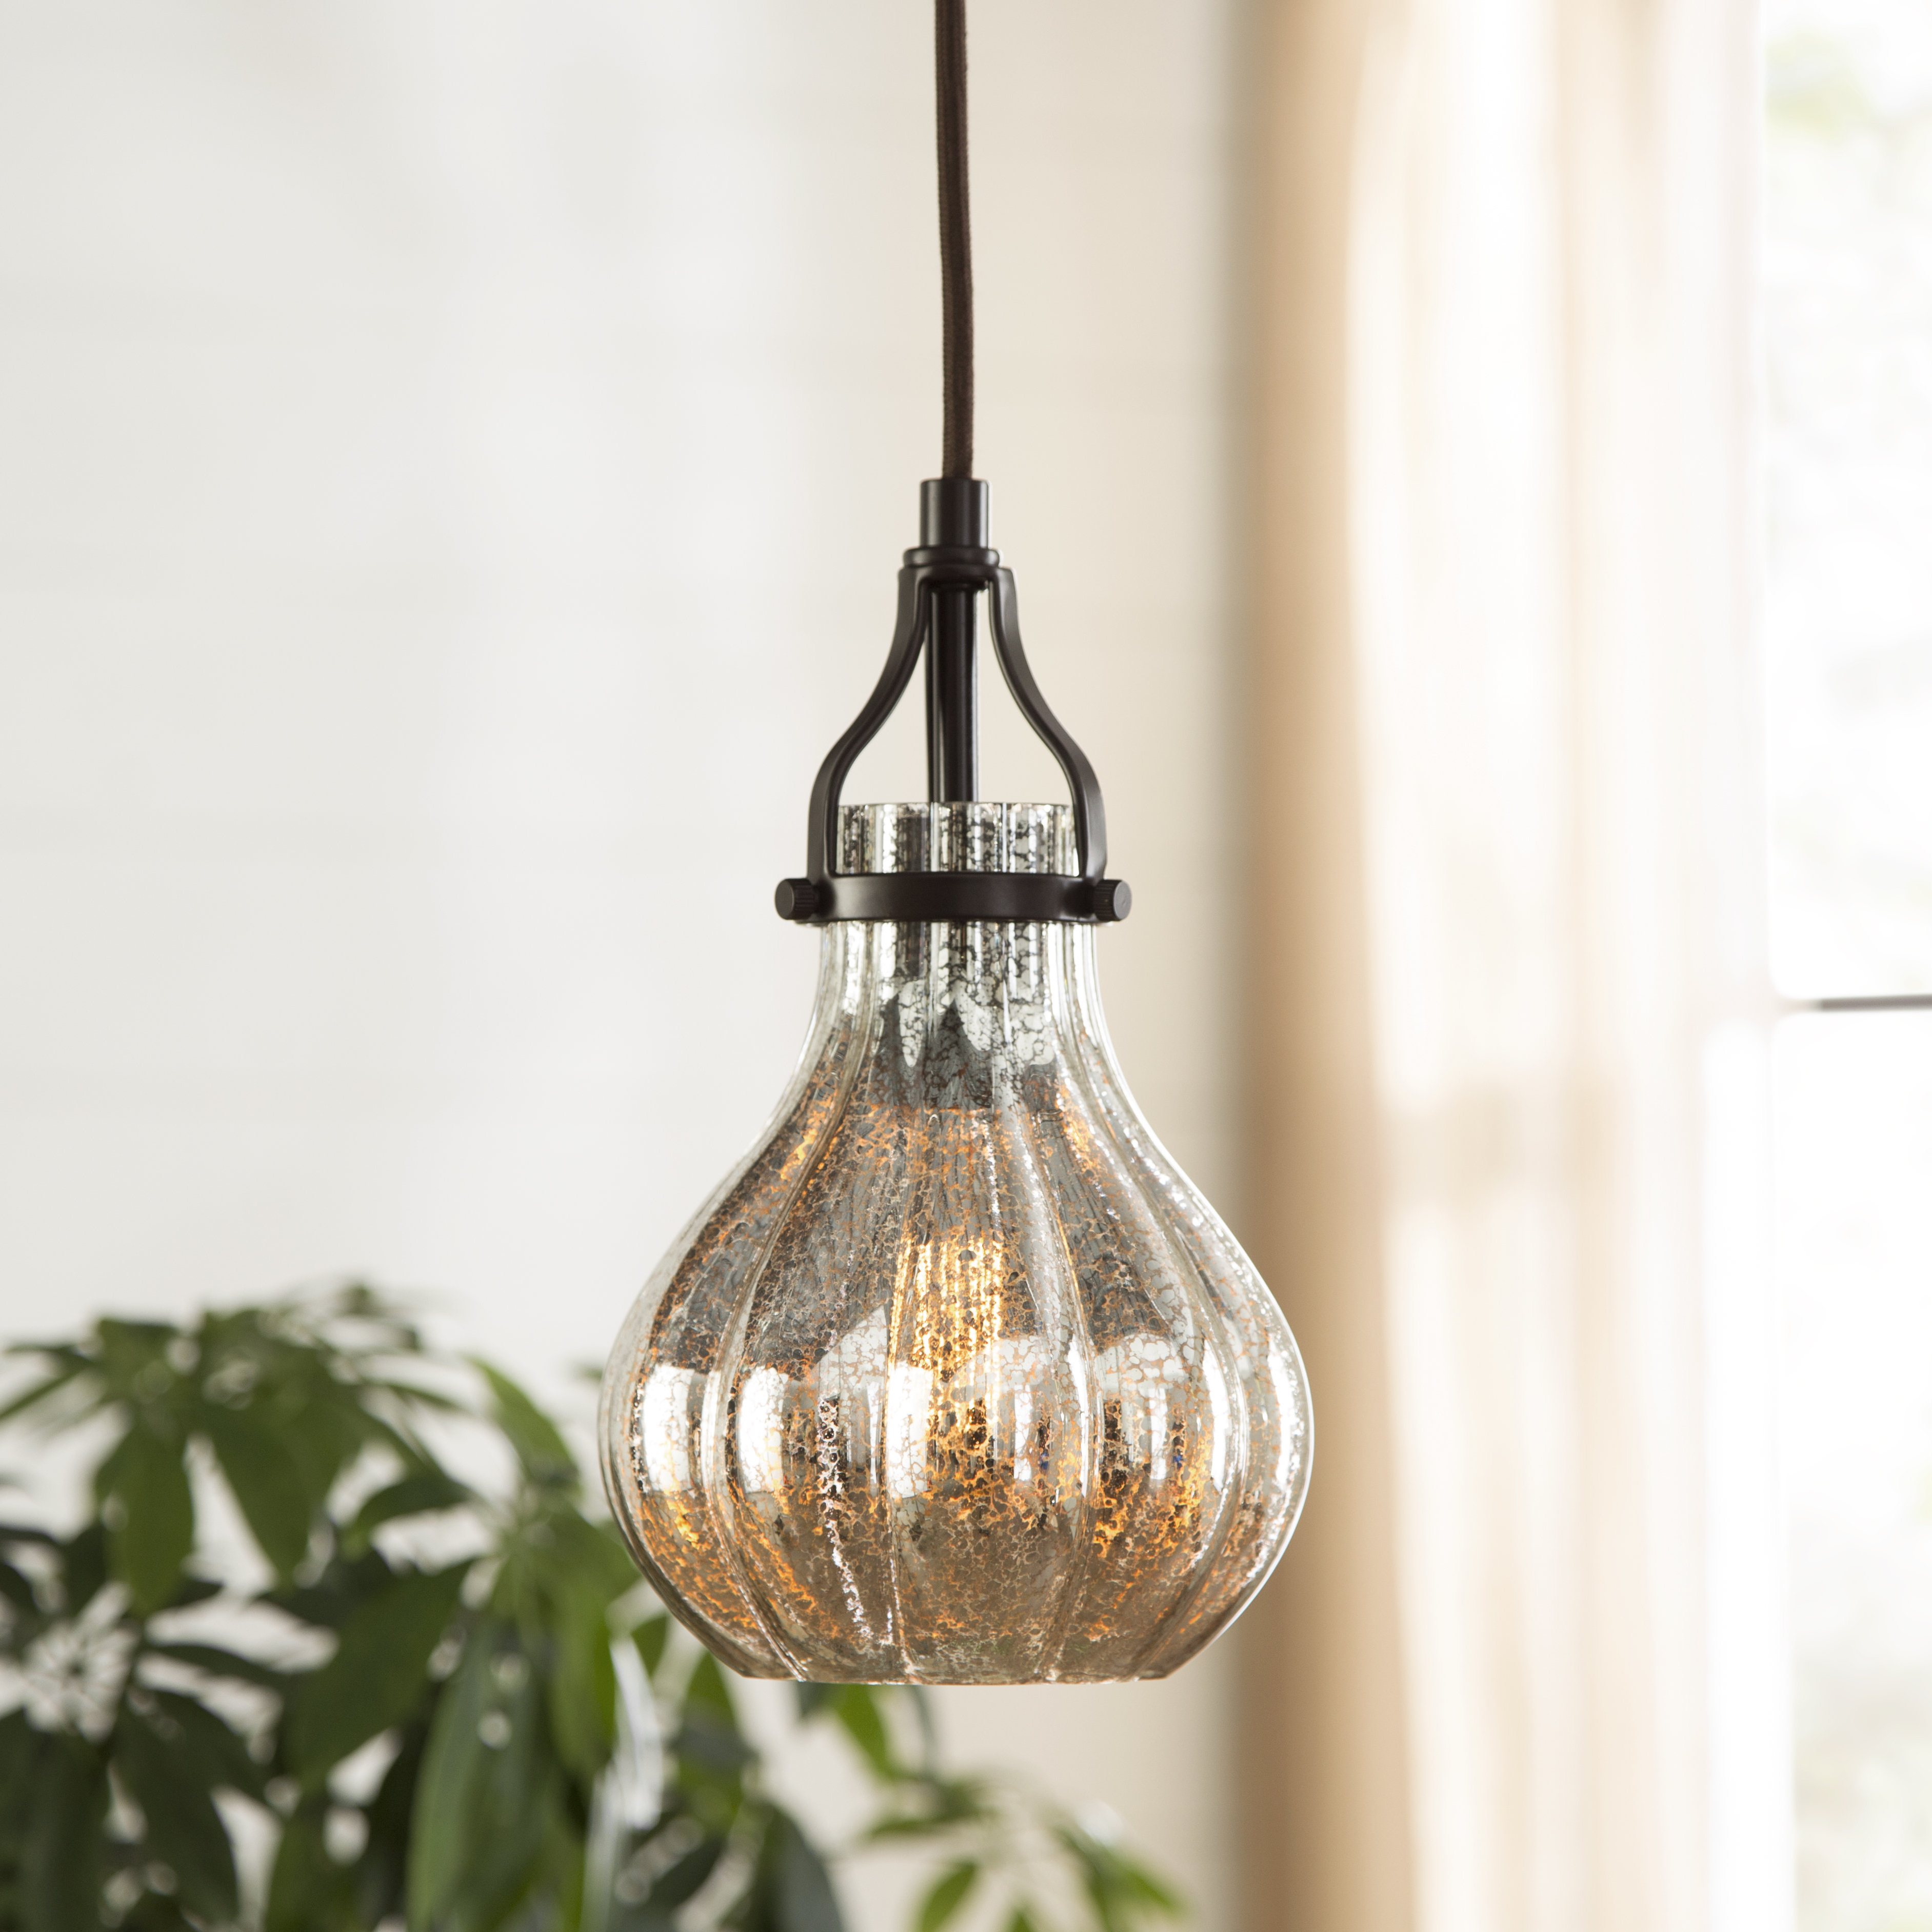 Scruggs 1 Light Geometric Pendants Pertaining To Most Up To Date Orofino 1 Light Single Teardrop Pendant (View 18 of 25)